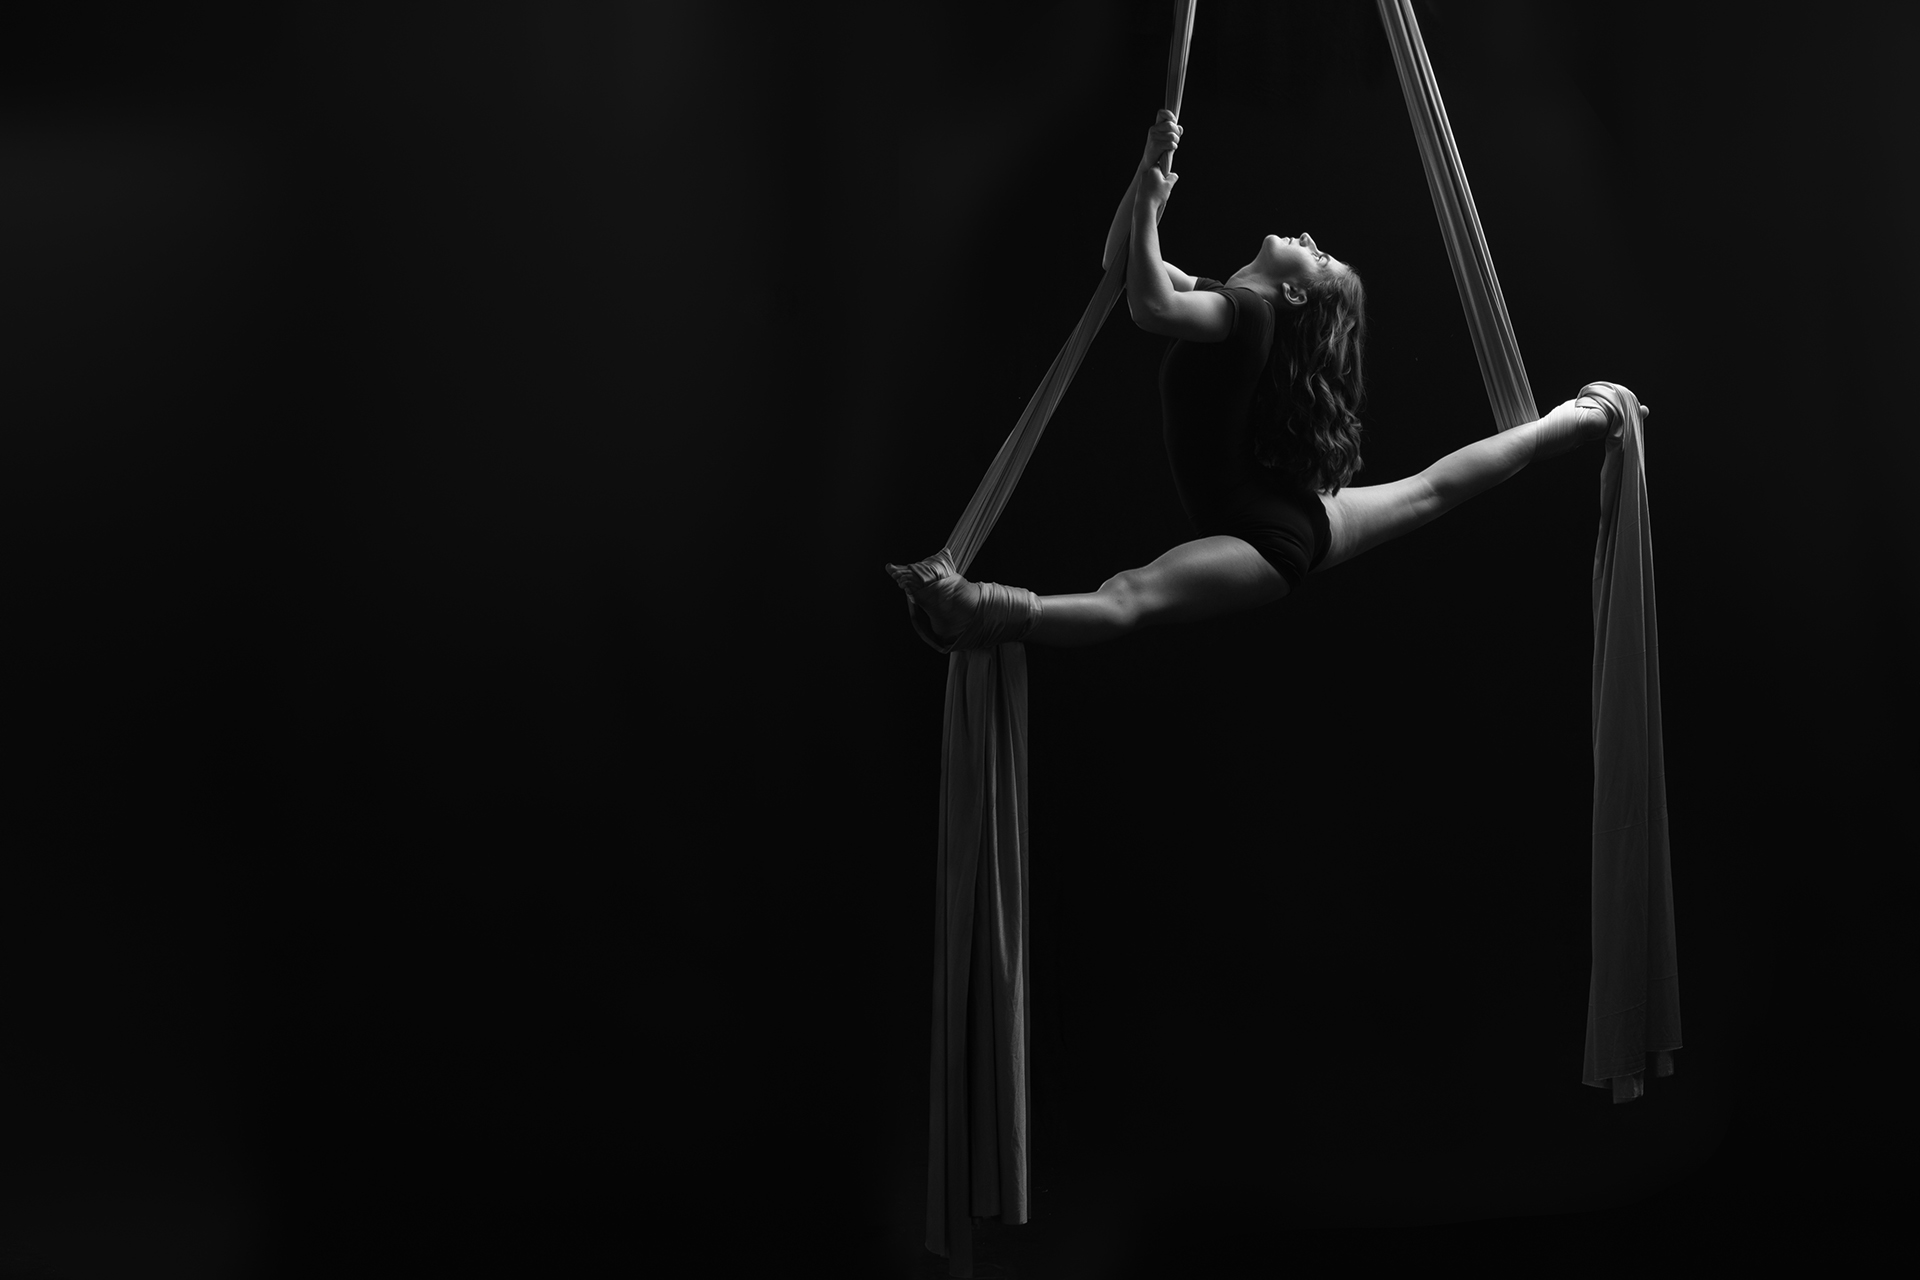 Awe-Inspiring - Lauren's beautiful moves, while elevated on the silk, left us in awe